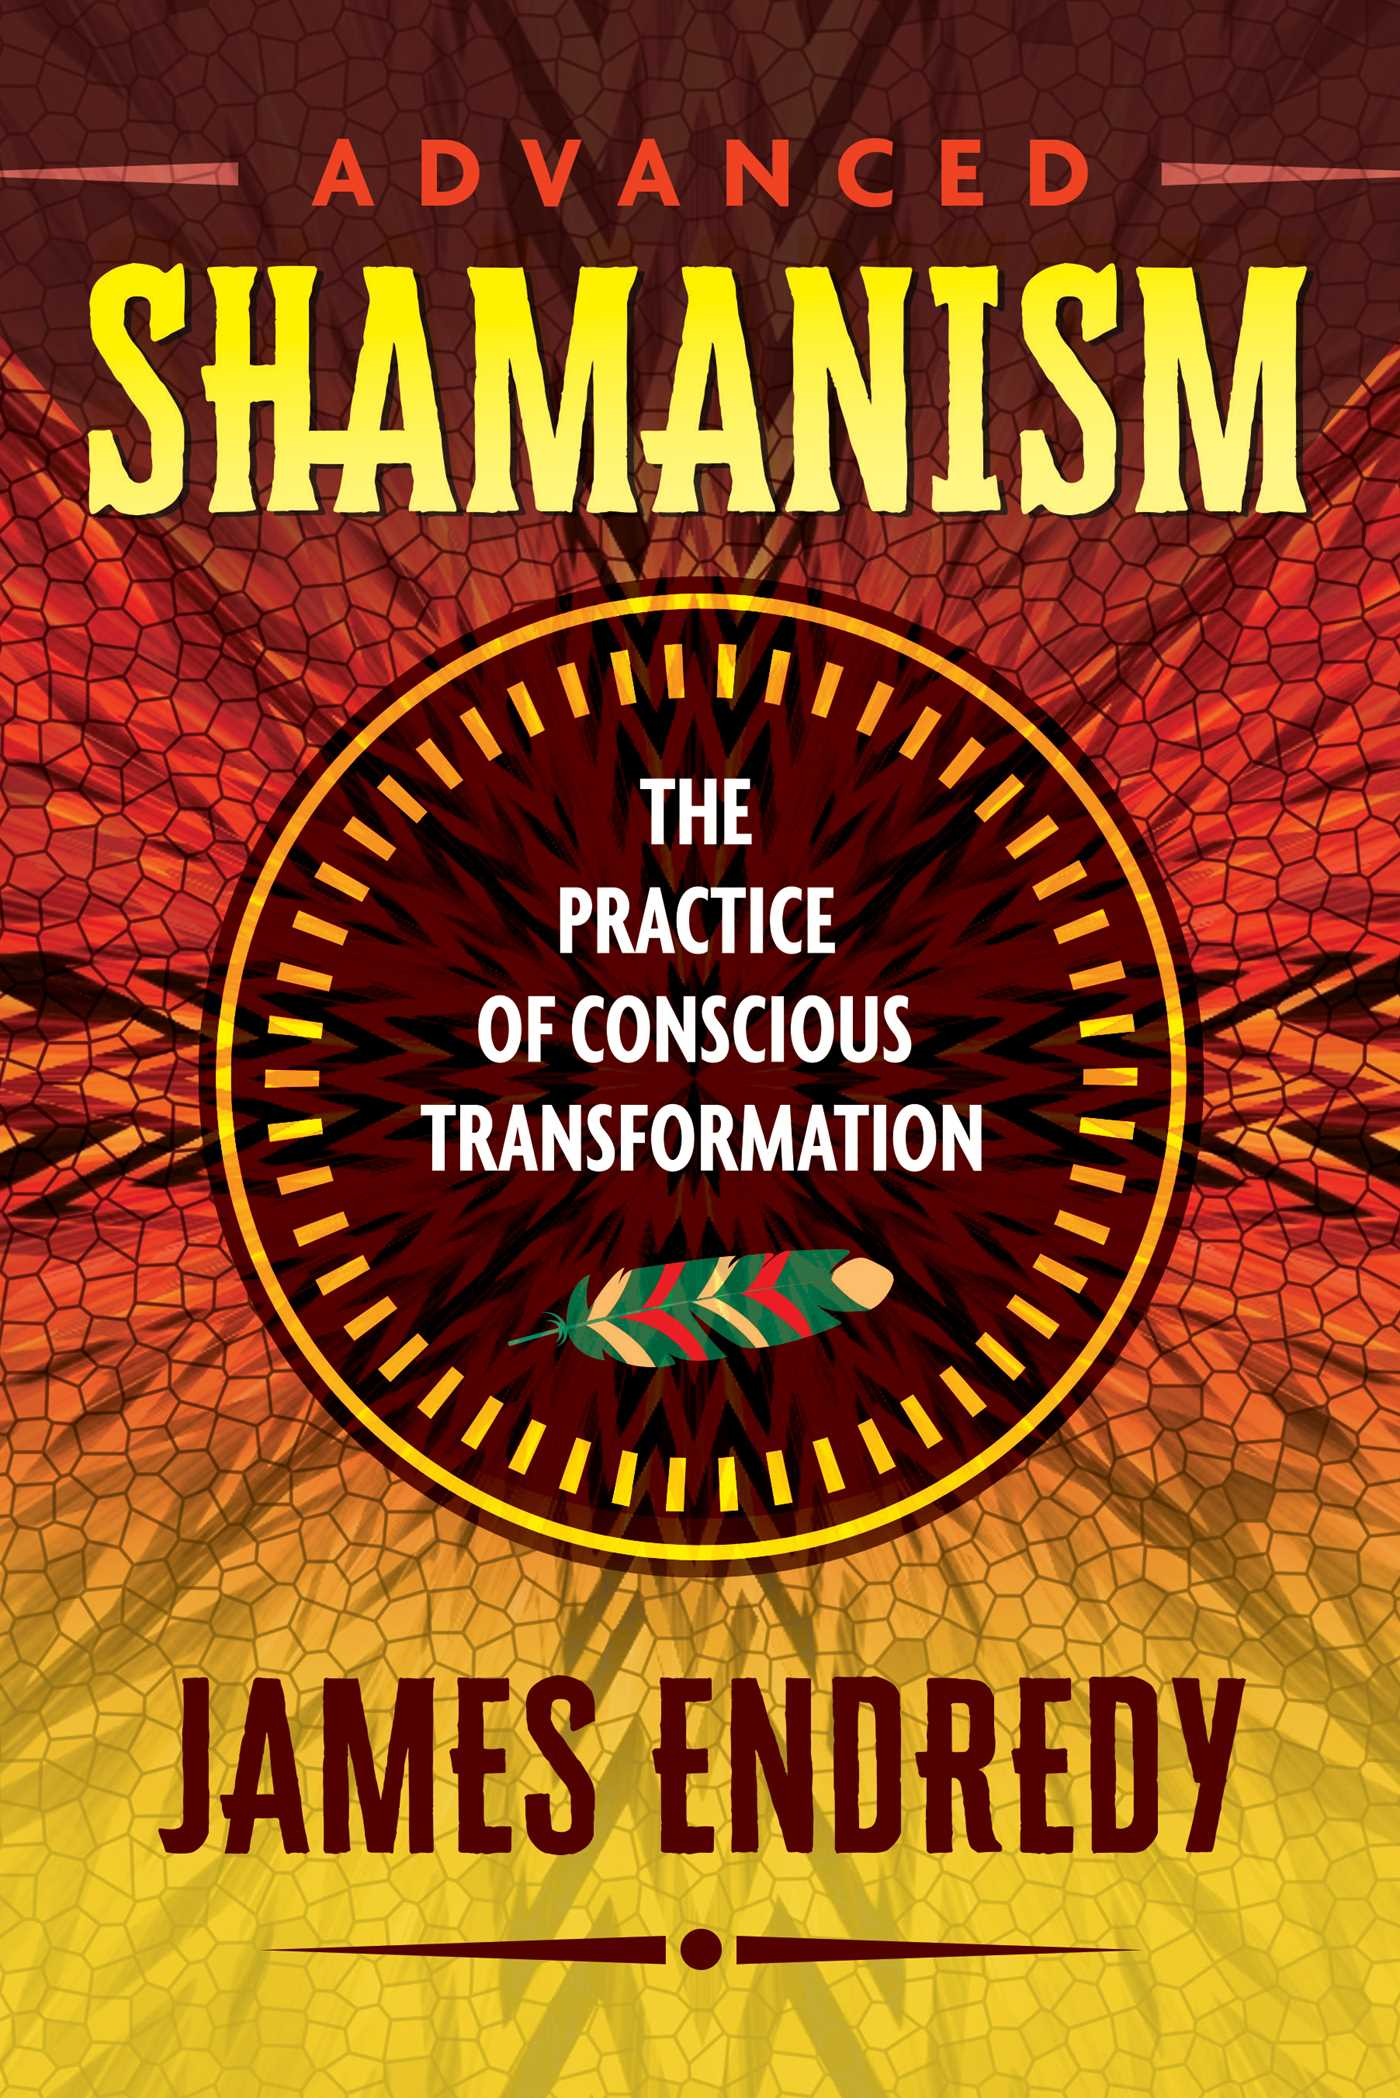 Advanced shamanism 9781591432838 hr